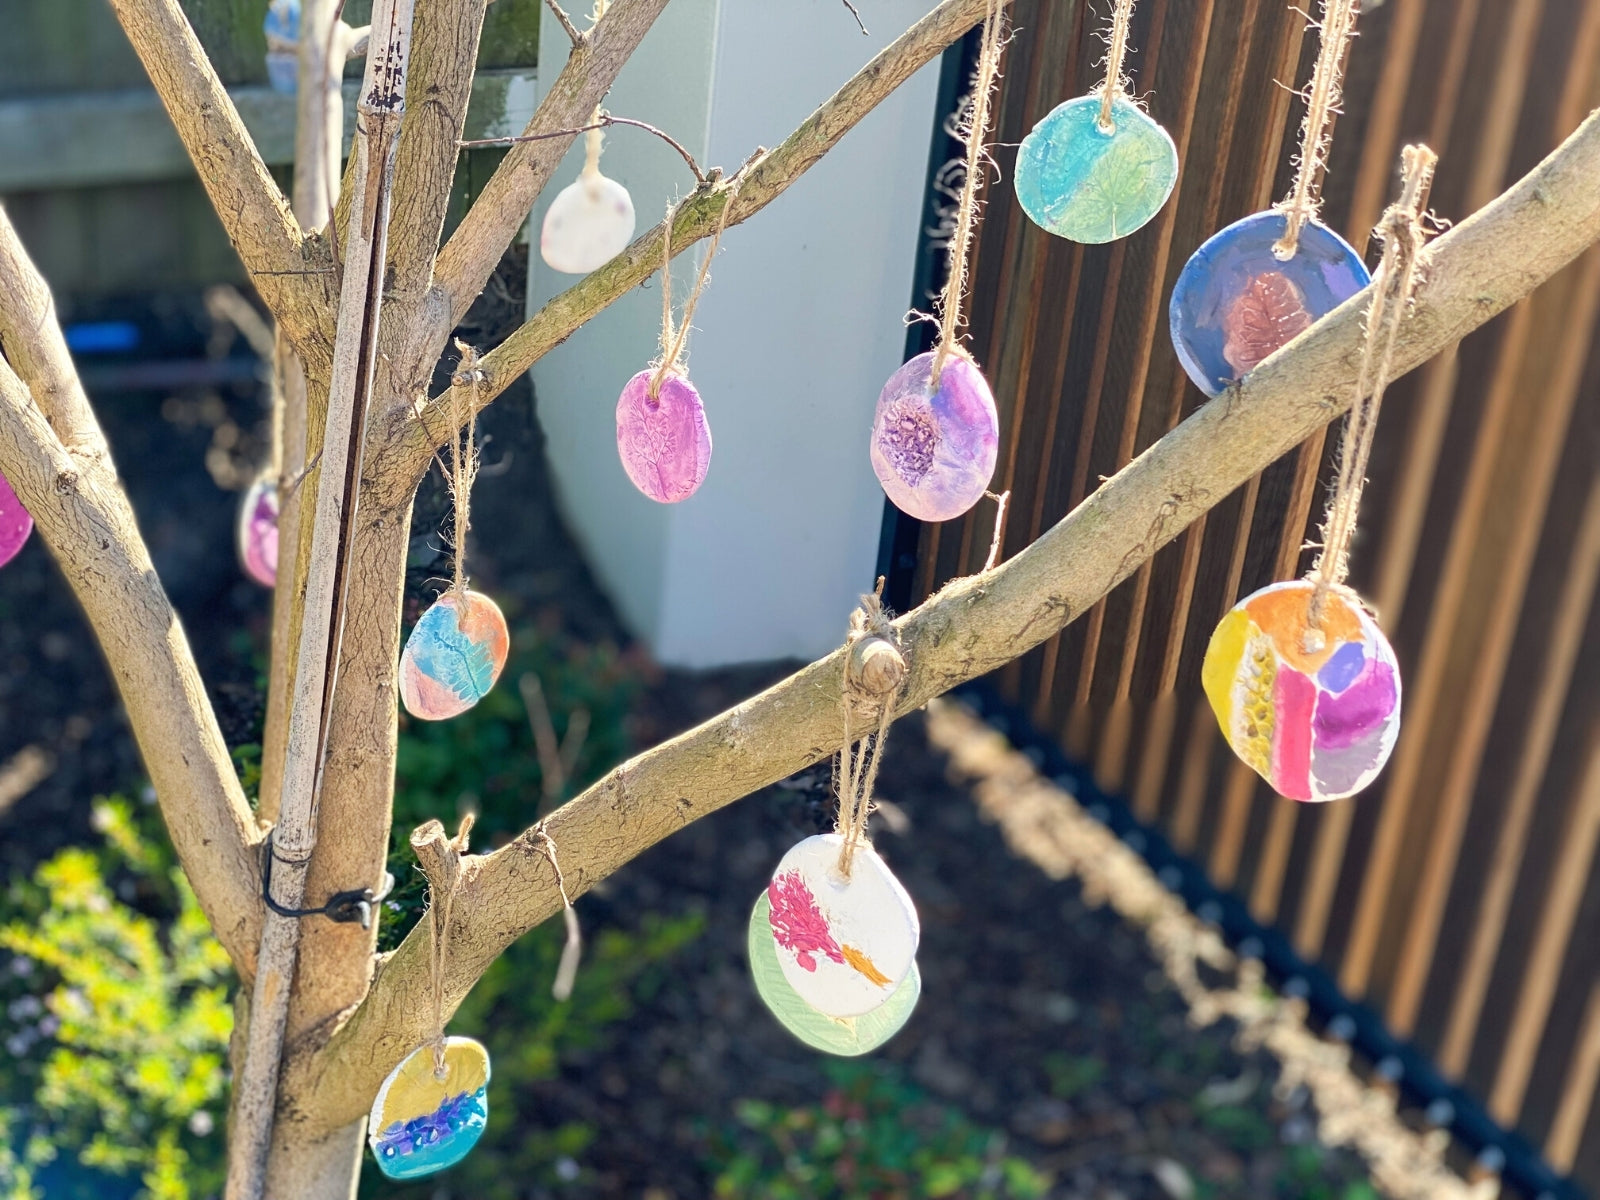 Use twine to hang up your nature clay ornaments. Why not decorate a tree or a few loose branches in celebration of Spring?